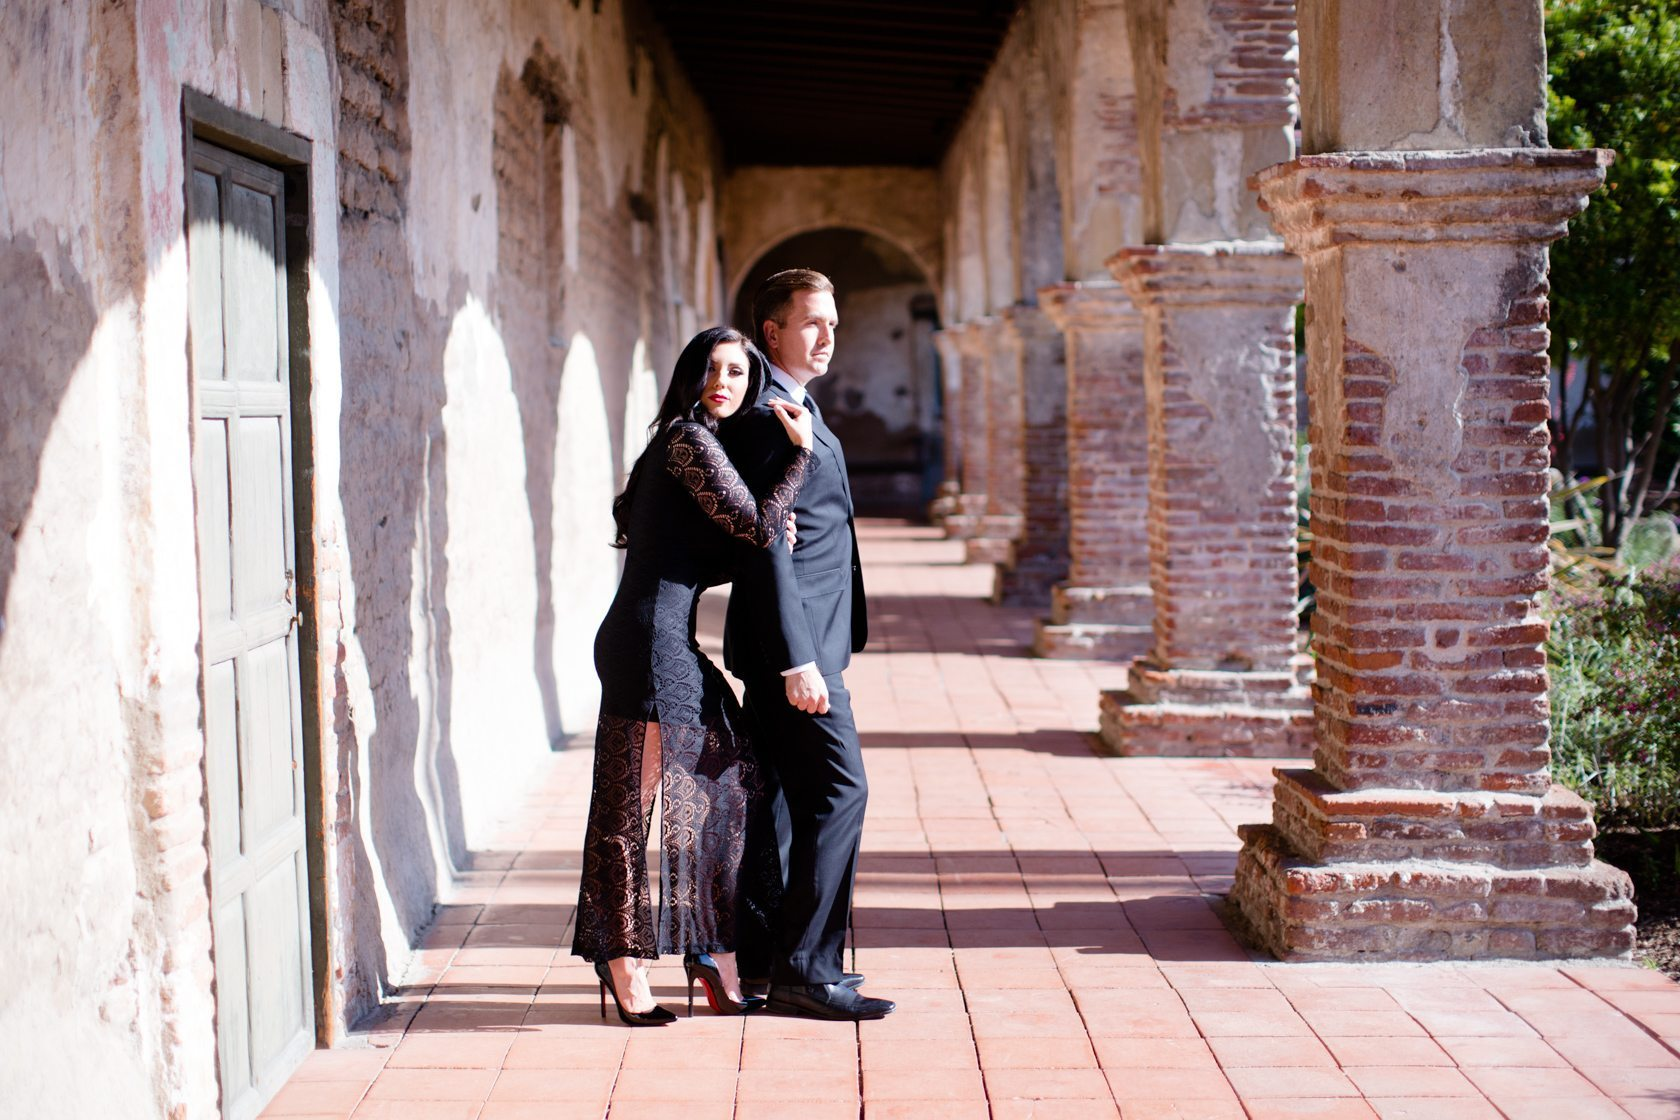 Mission_San_Juan_Capistrano_Engagement_Session_03.jpg